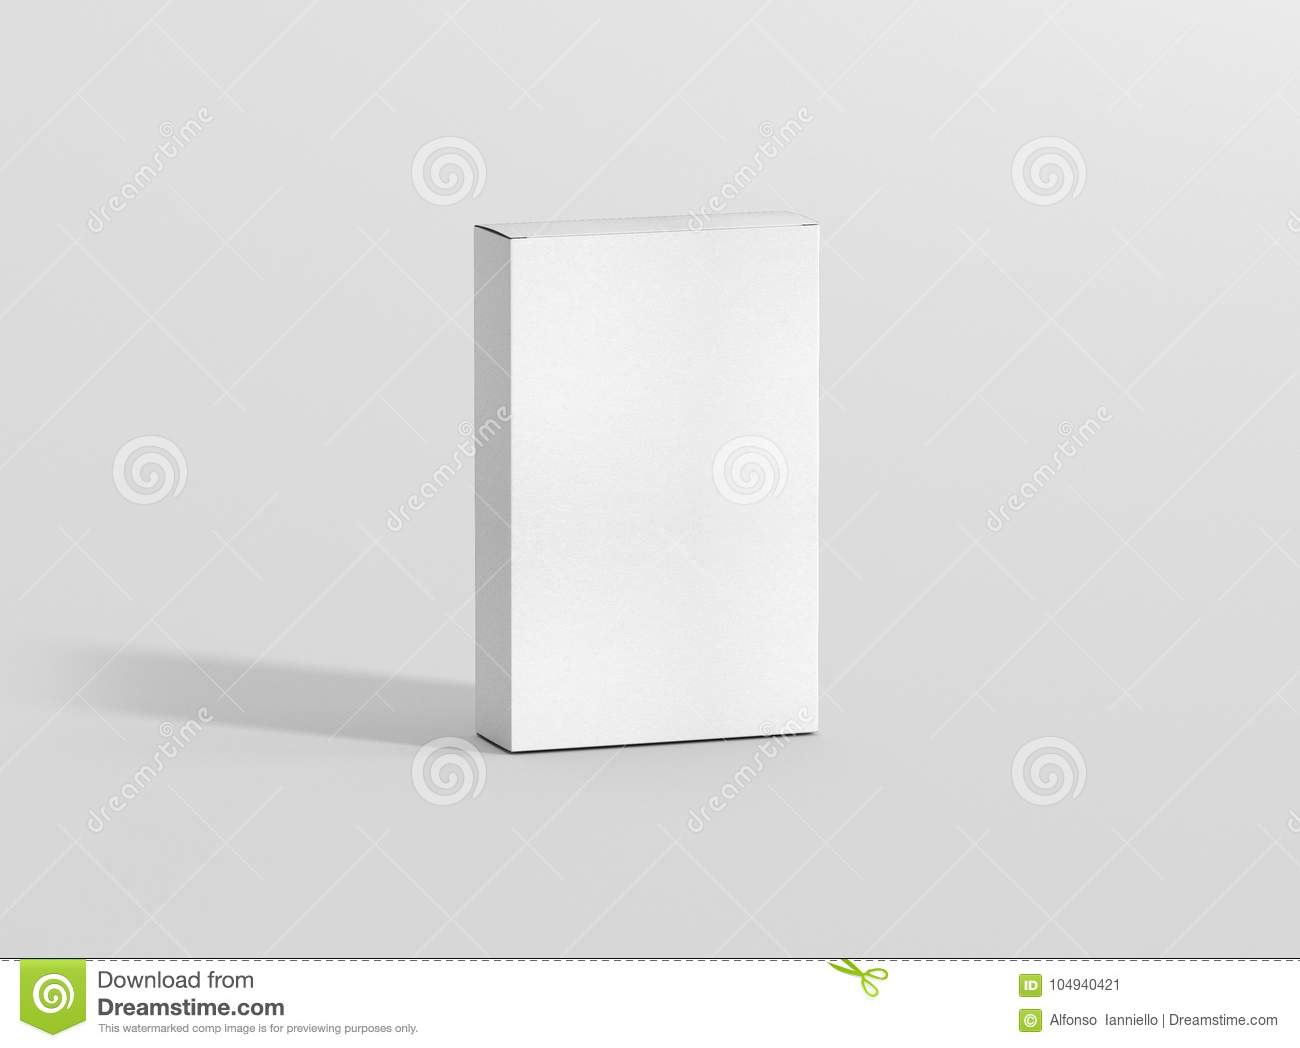 Photorealistic high quality Flat Rectangle Cardboard Package Box Mockup on light grey background.